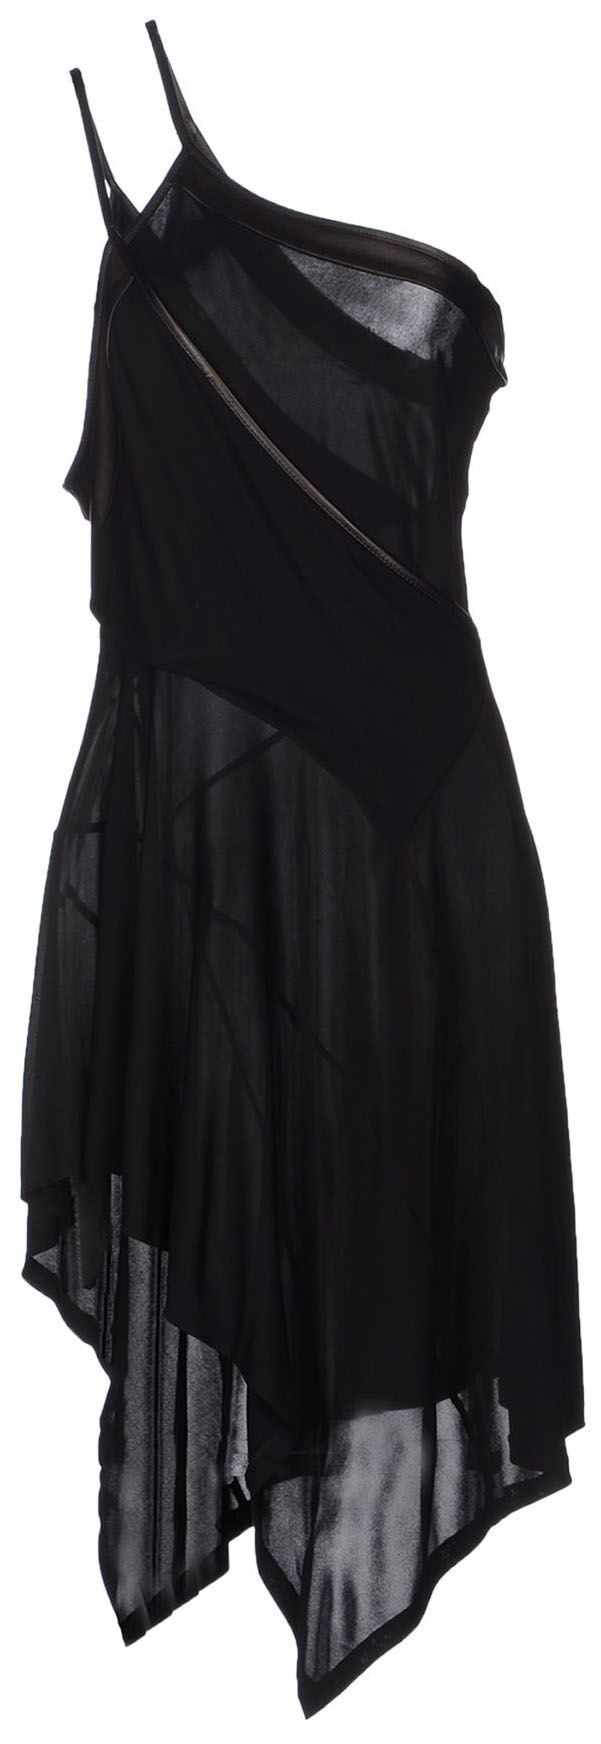 barbara bui short asymmetrical hemline black dress